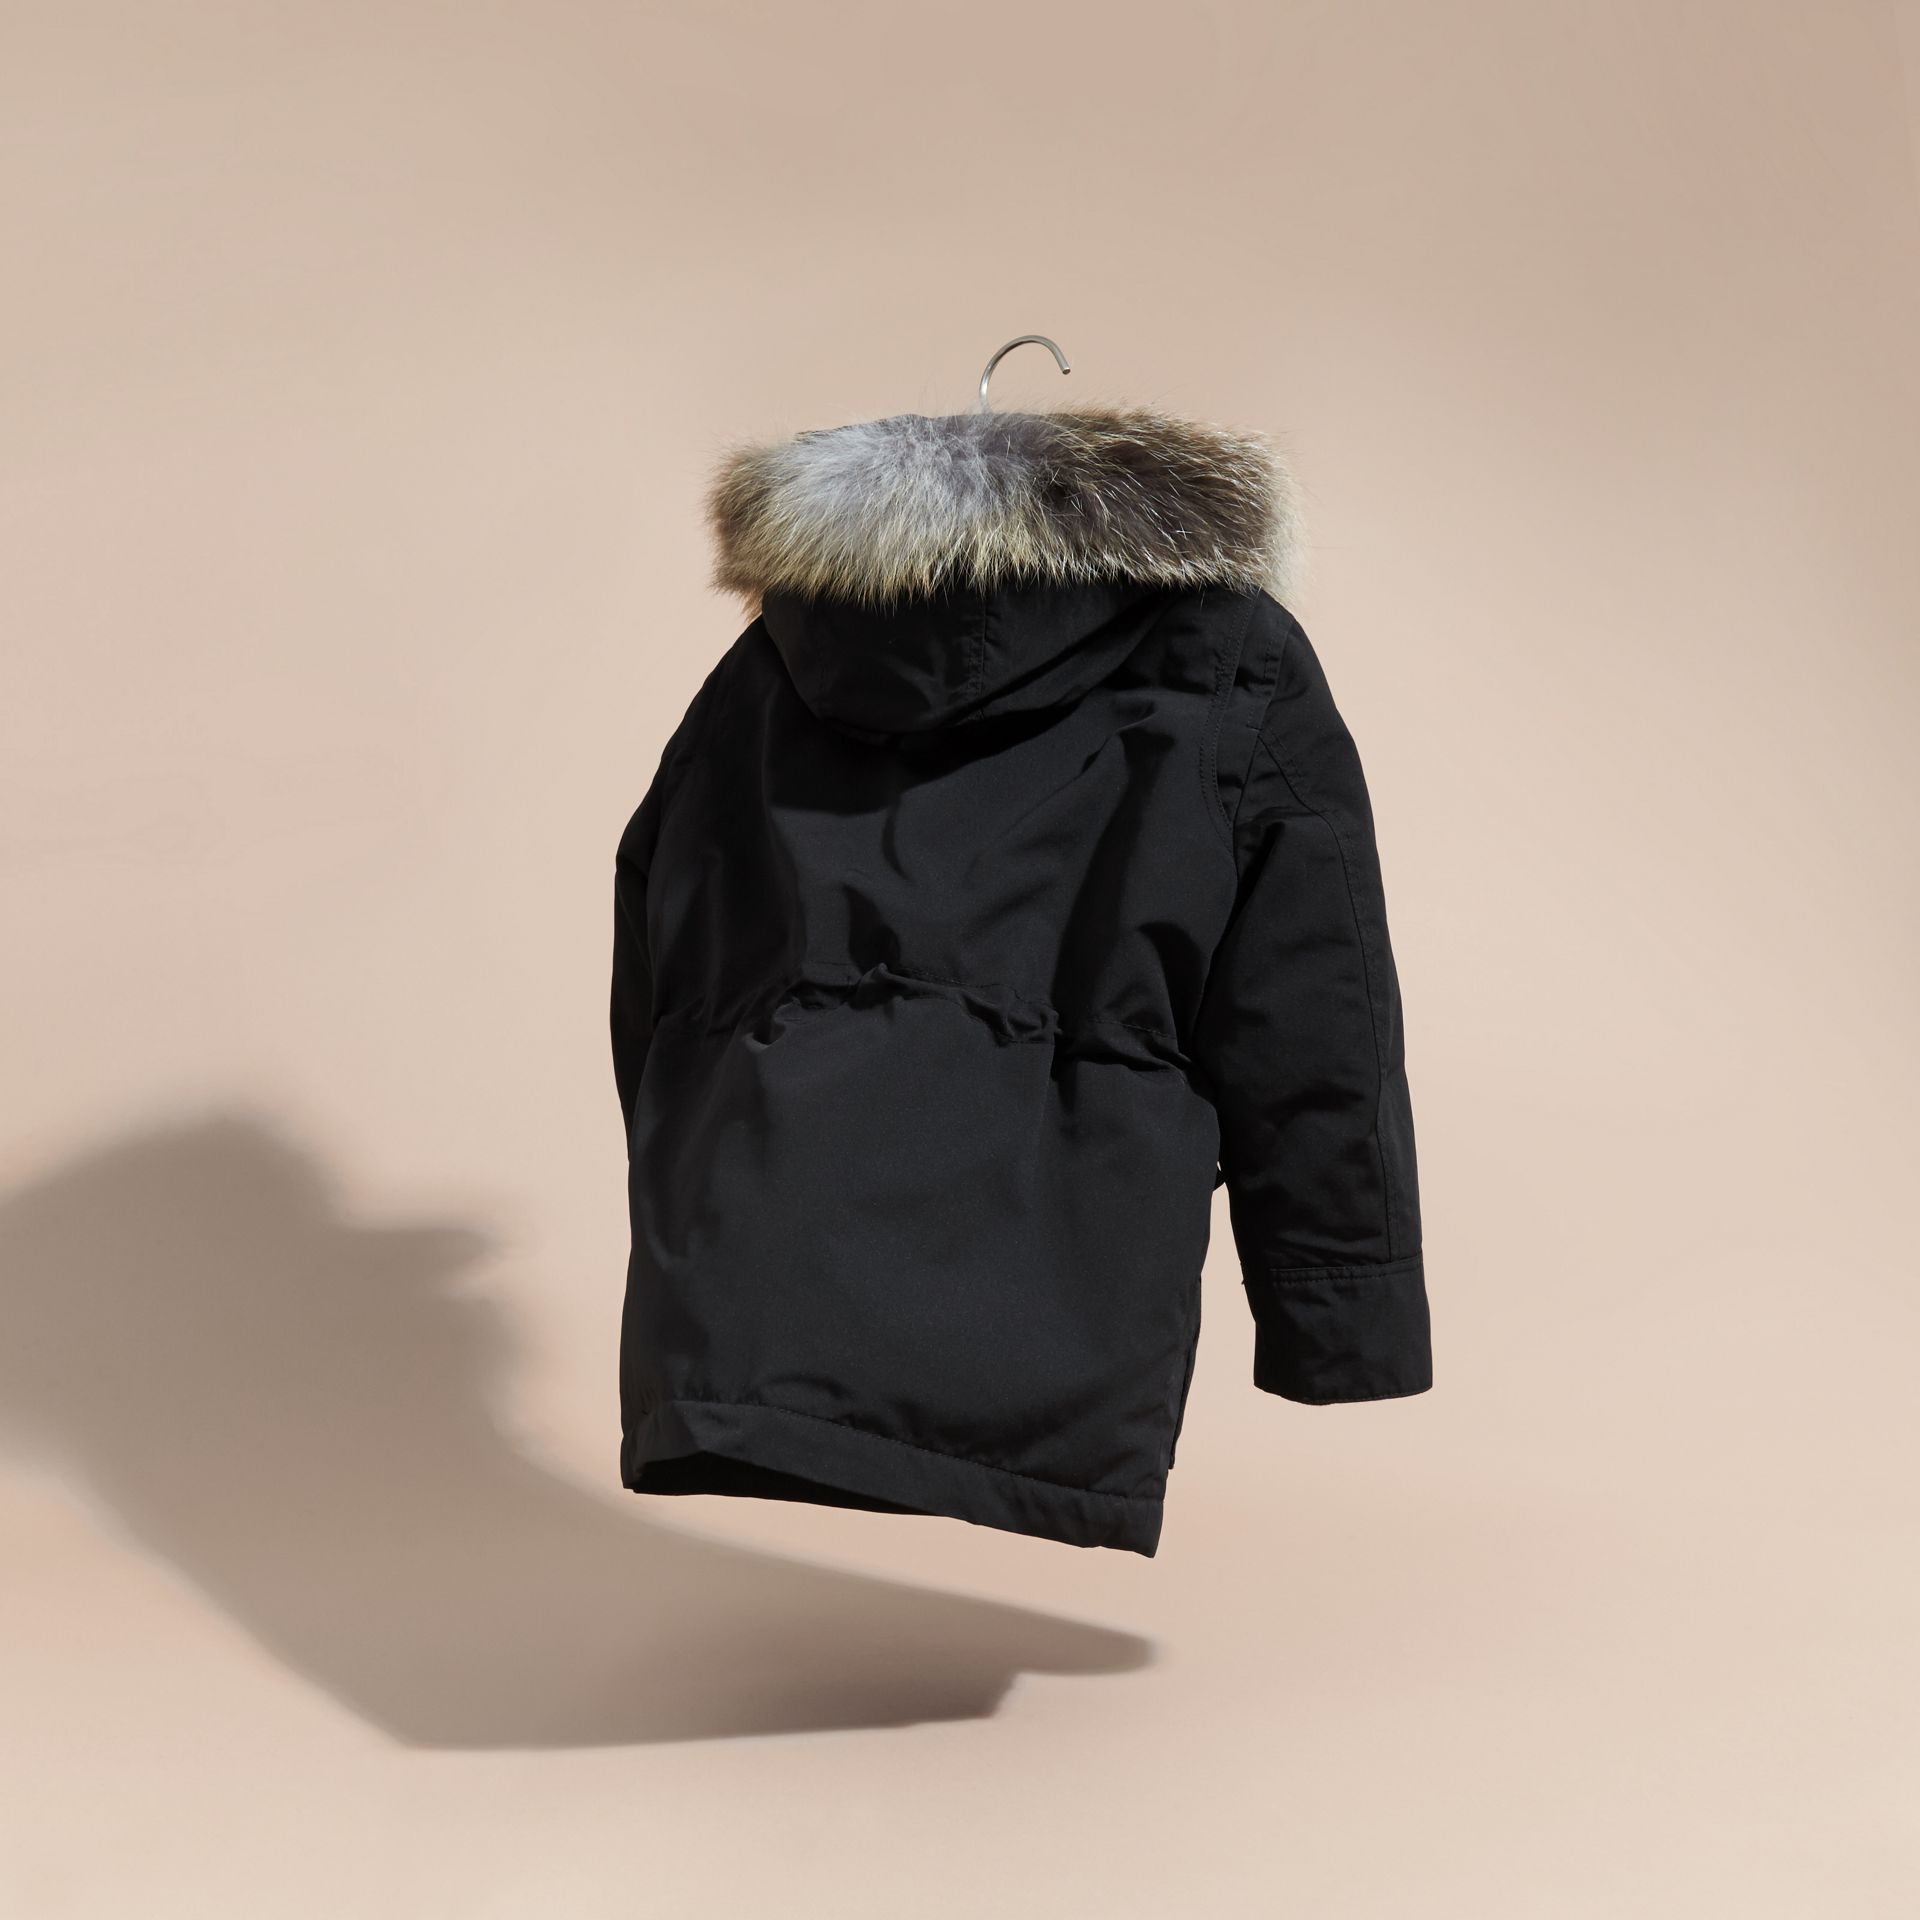 Black Fur-trimmed Down-filled Hooded Puffer Coat Black - gallery image 4